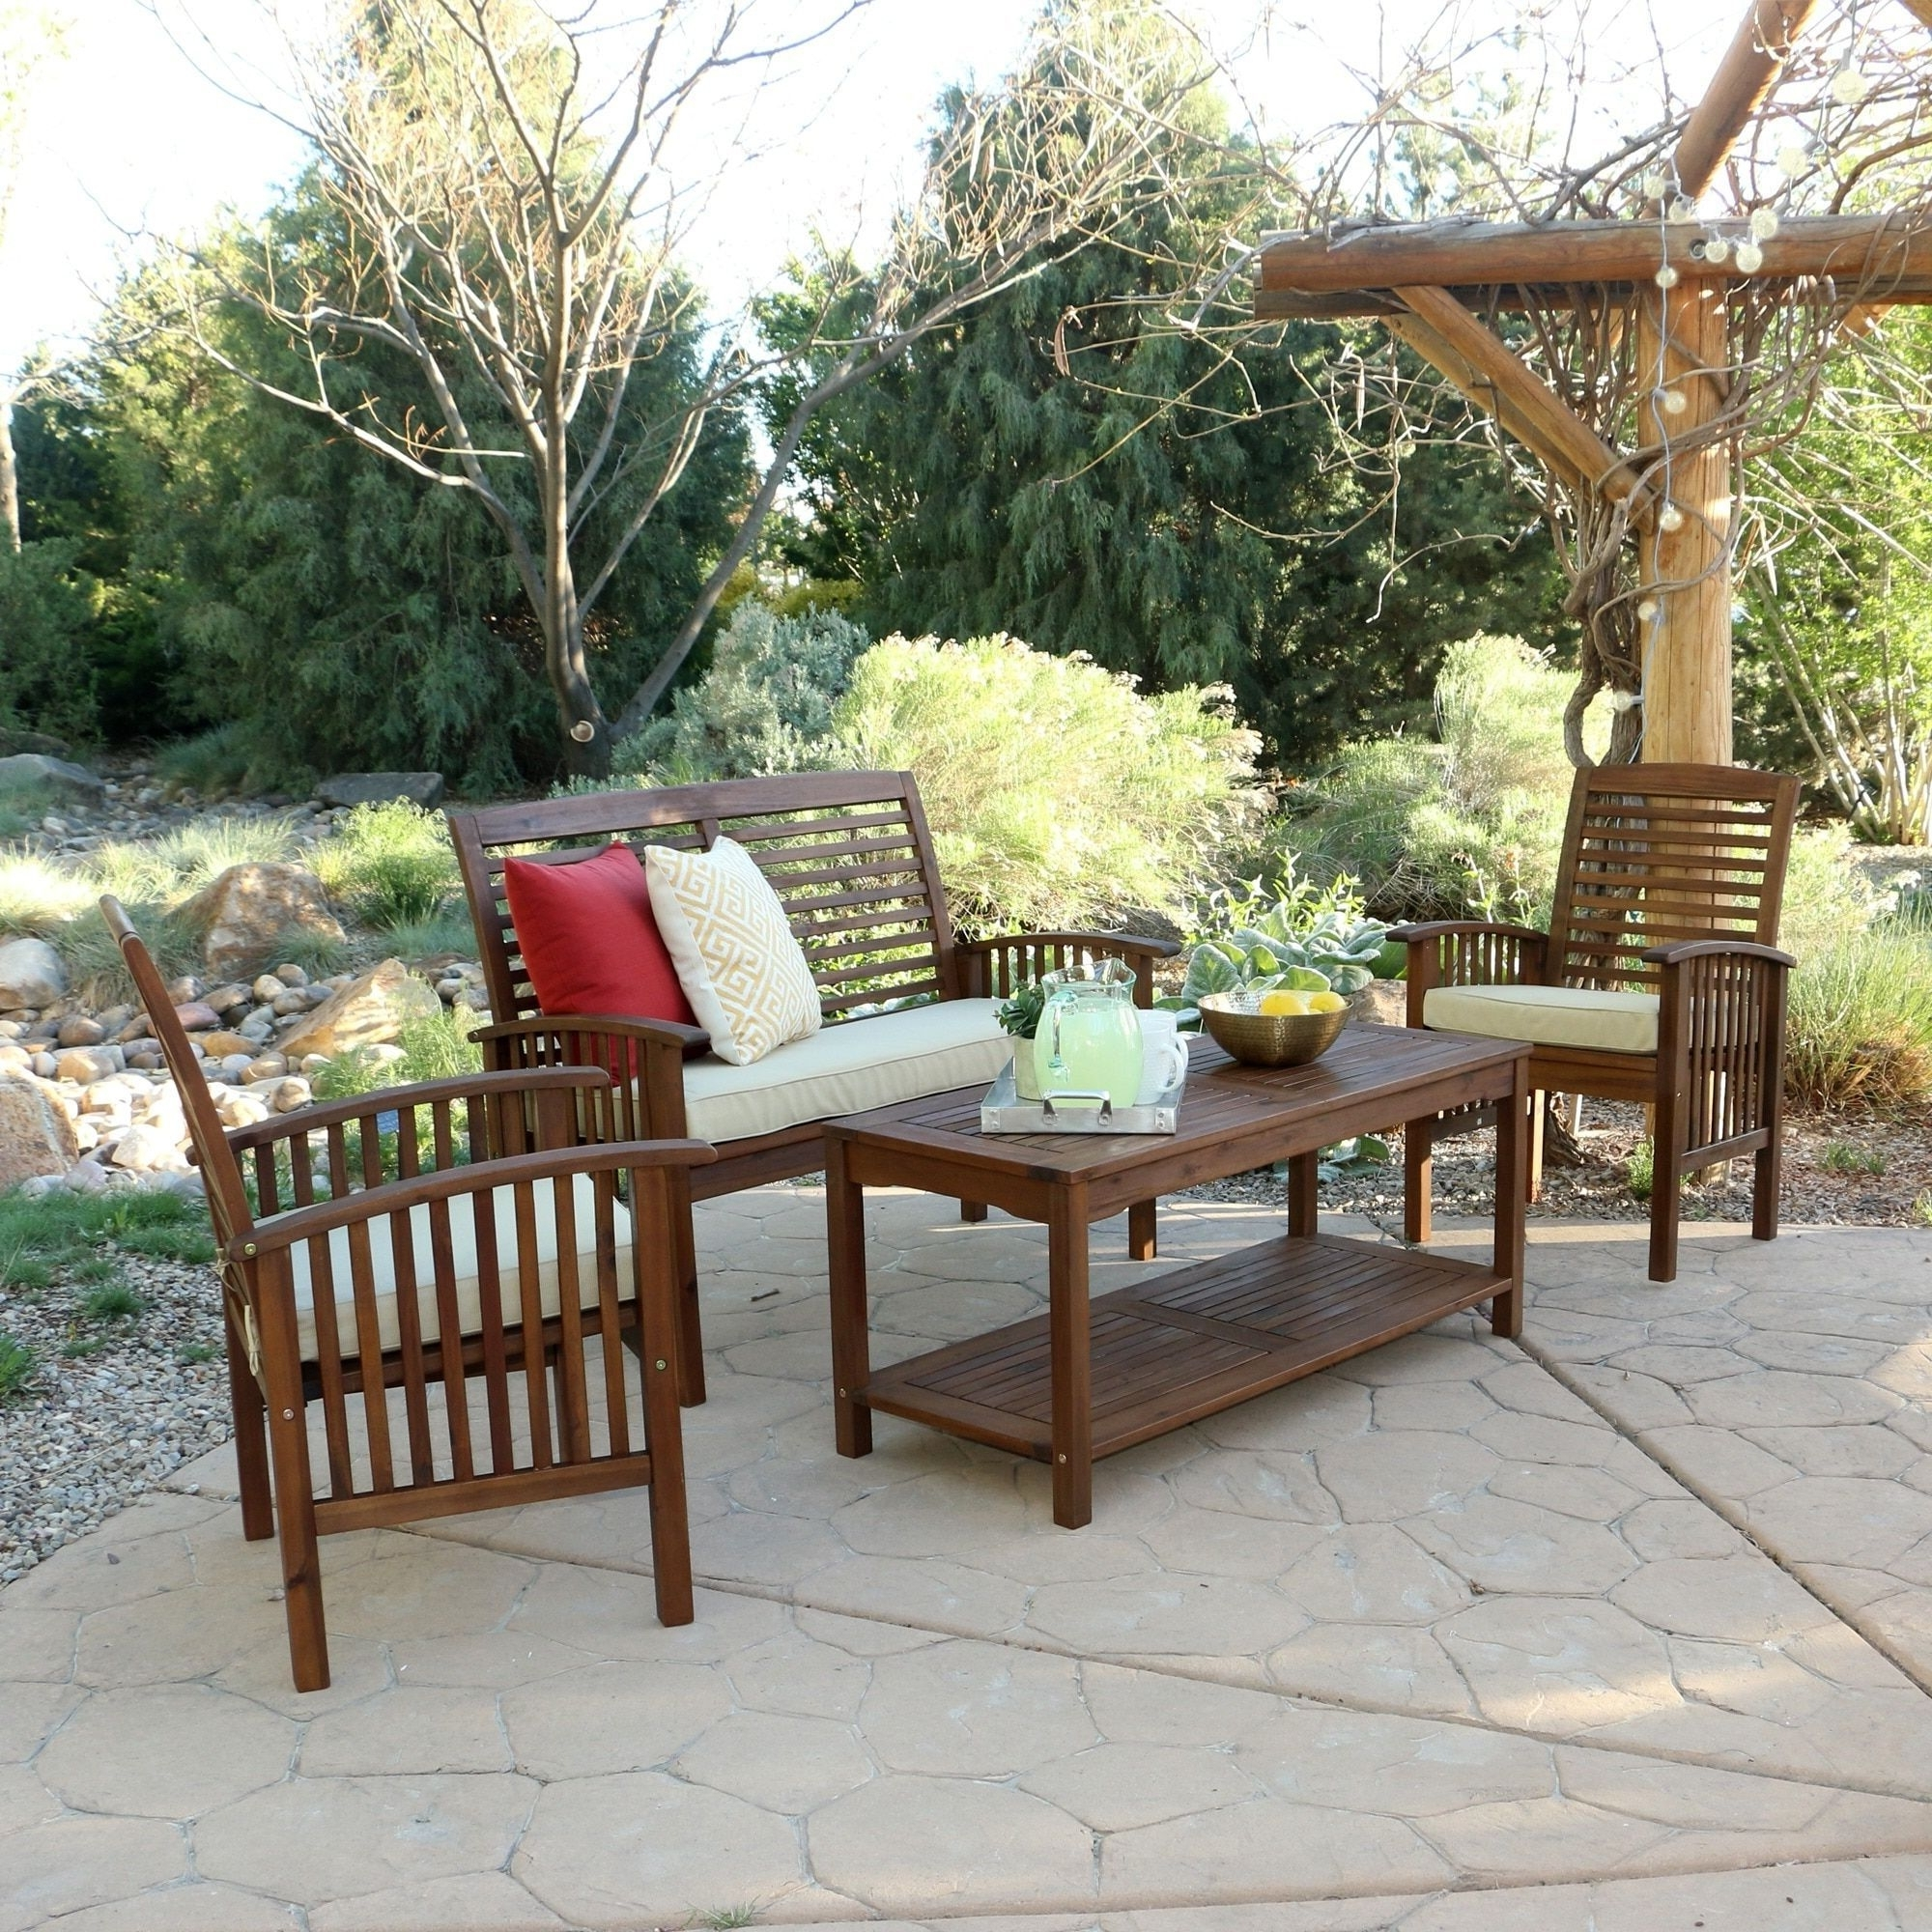 Wood Patio Furniture Conversation Sets In Most Up To Date 4 Piece Acacia Wood Patio Conversation Set, Brown, Size 4 Piece Sets (View 13 of 15)